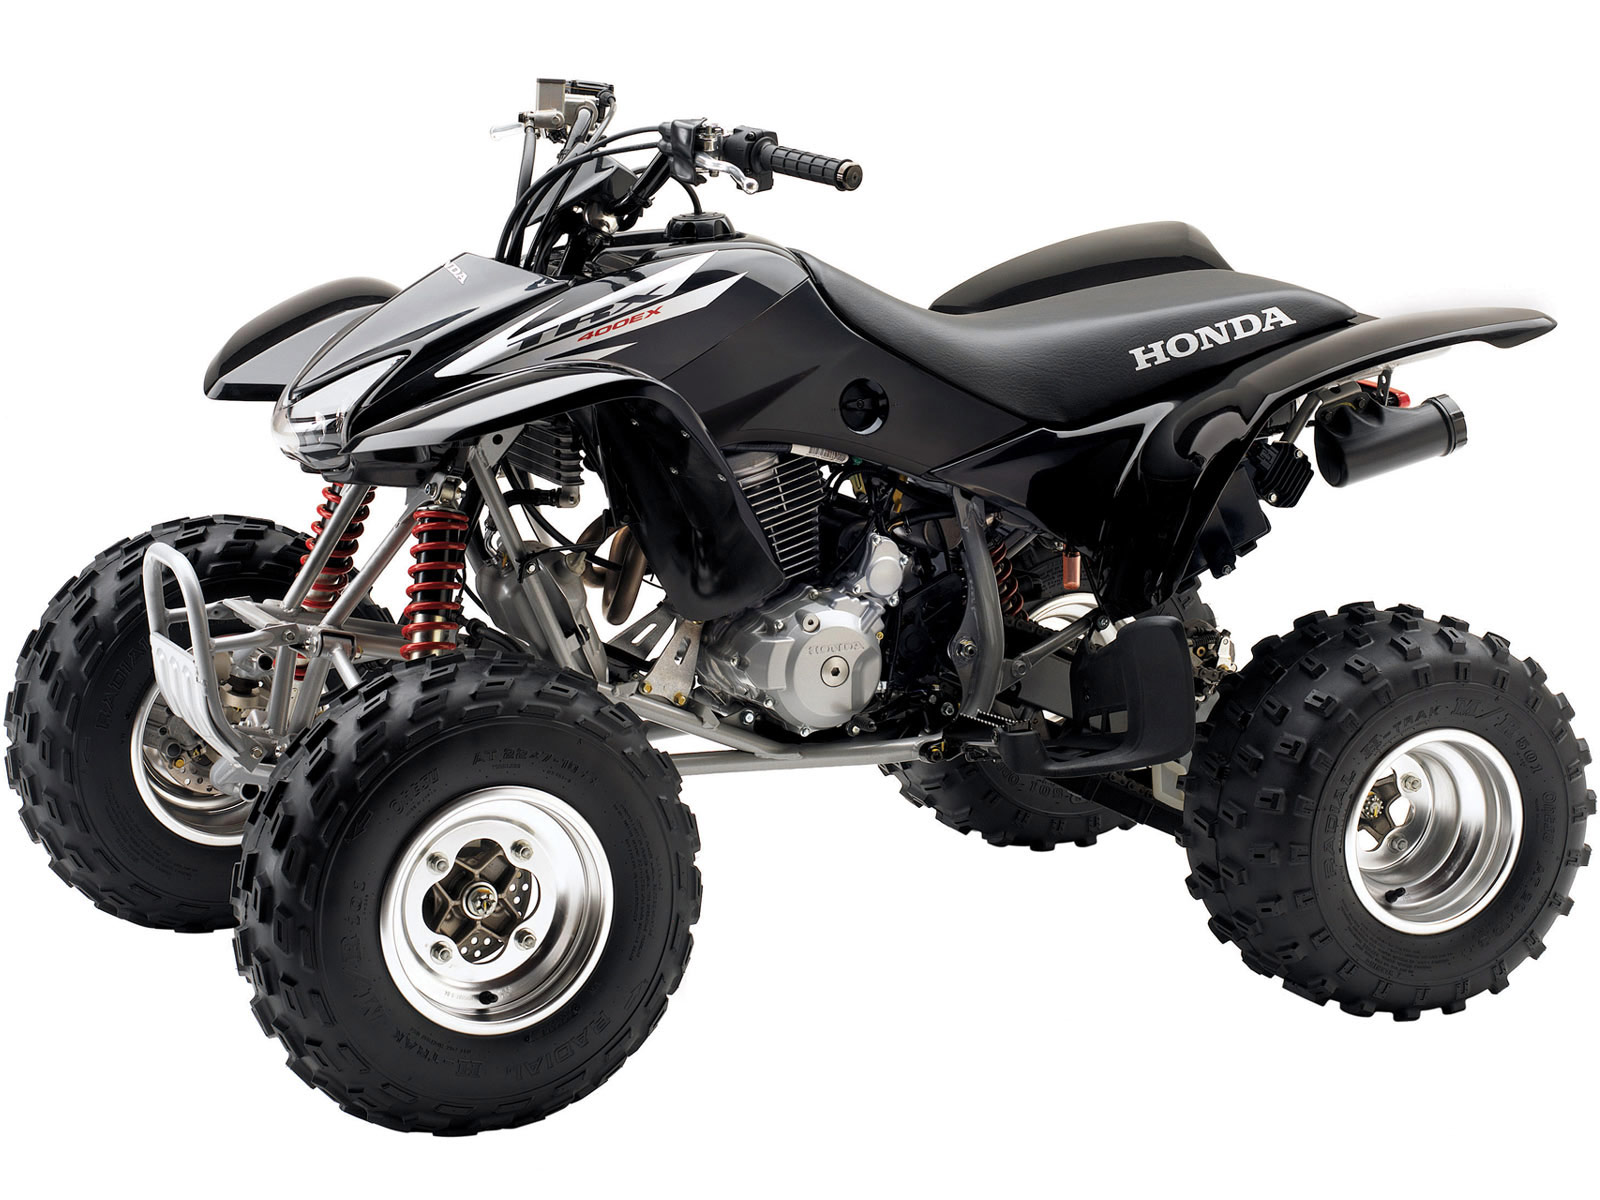 400ex honda atv. Black Bedroom Furniture Sets. Home Design Ideas